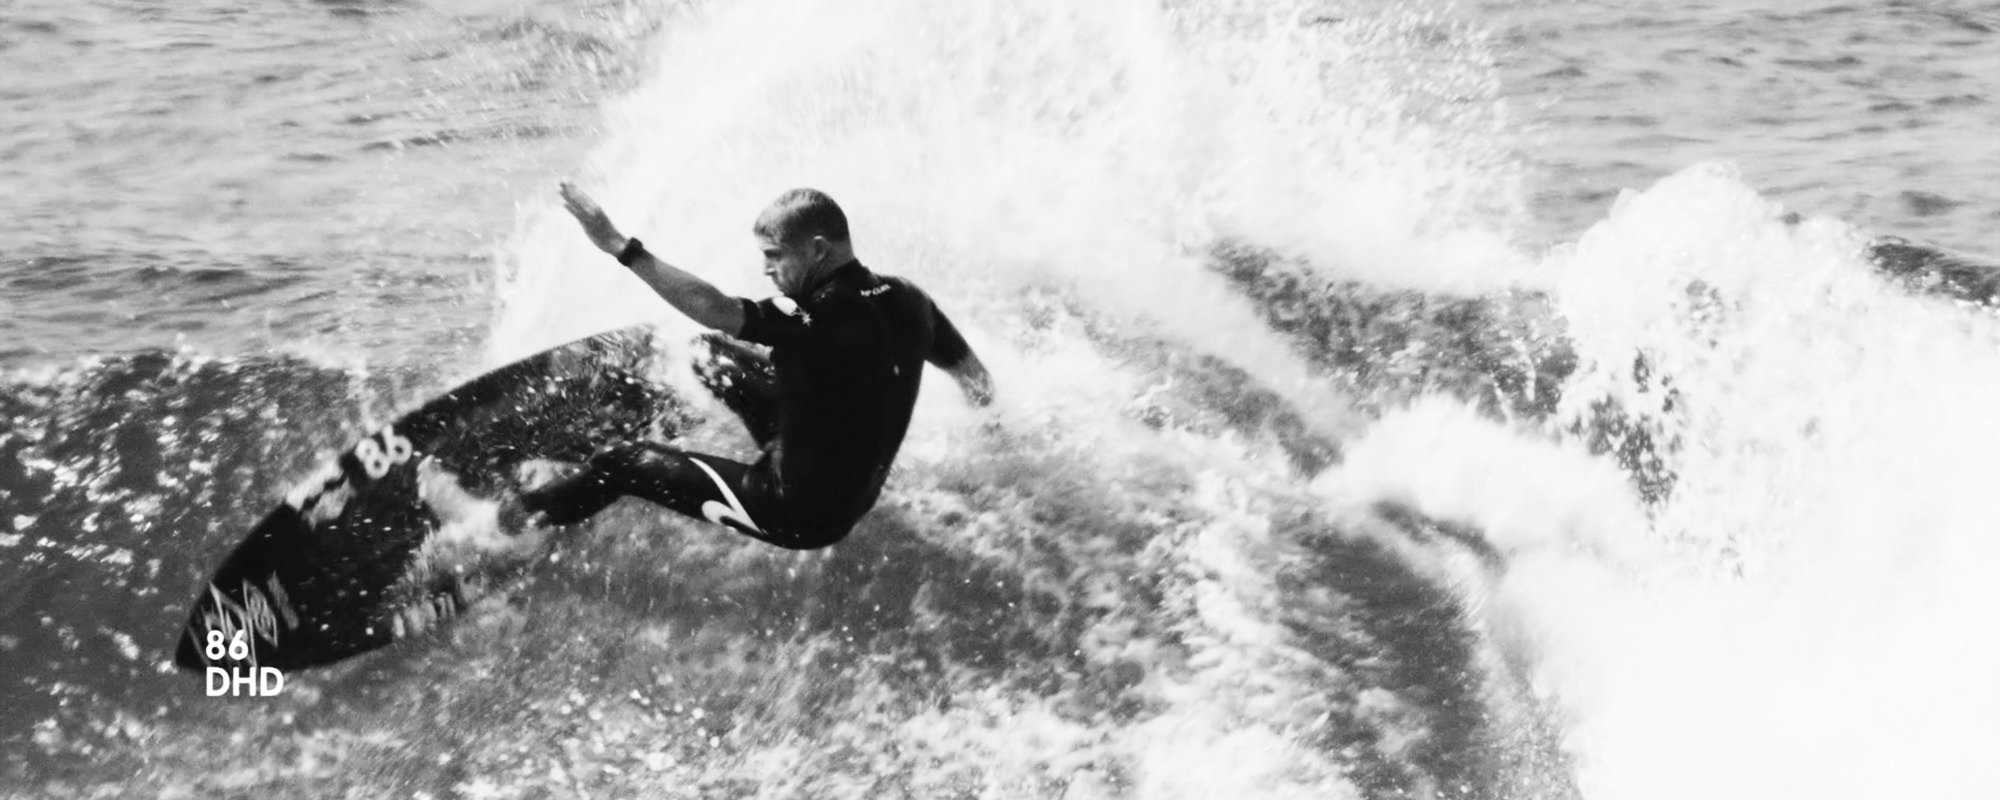 Mick Fanning Stab In The Dark 86